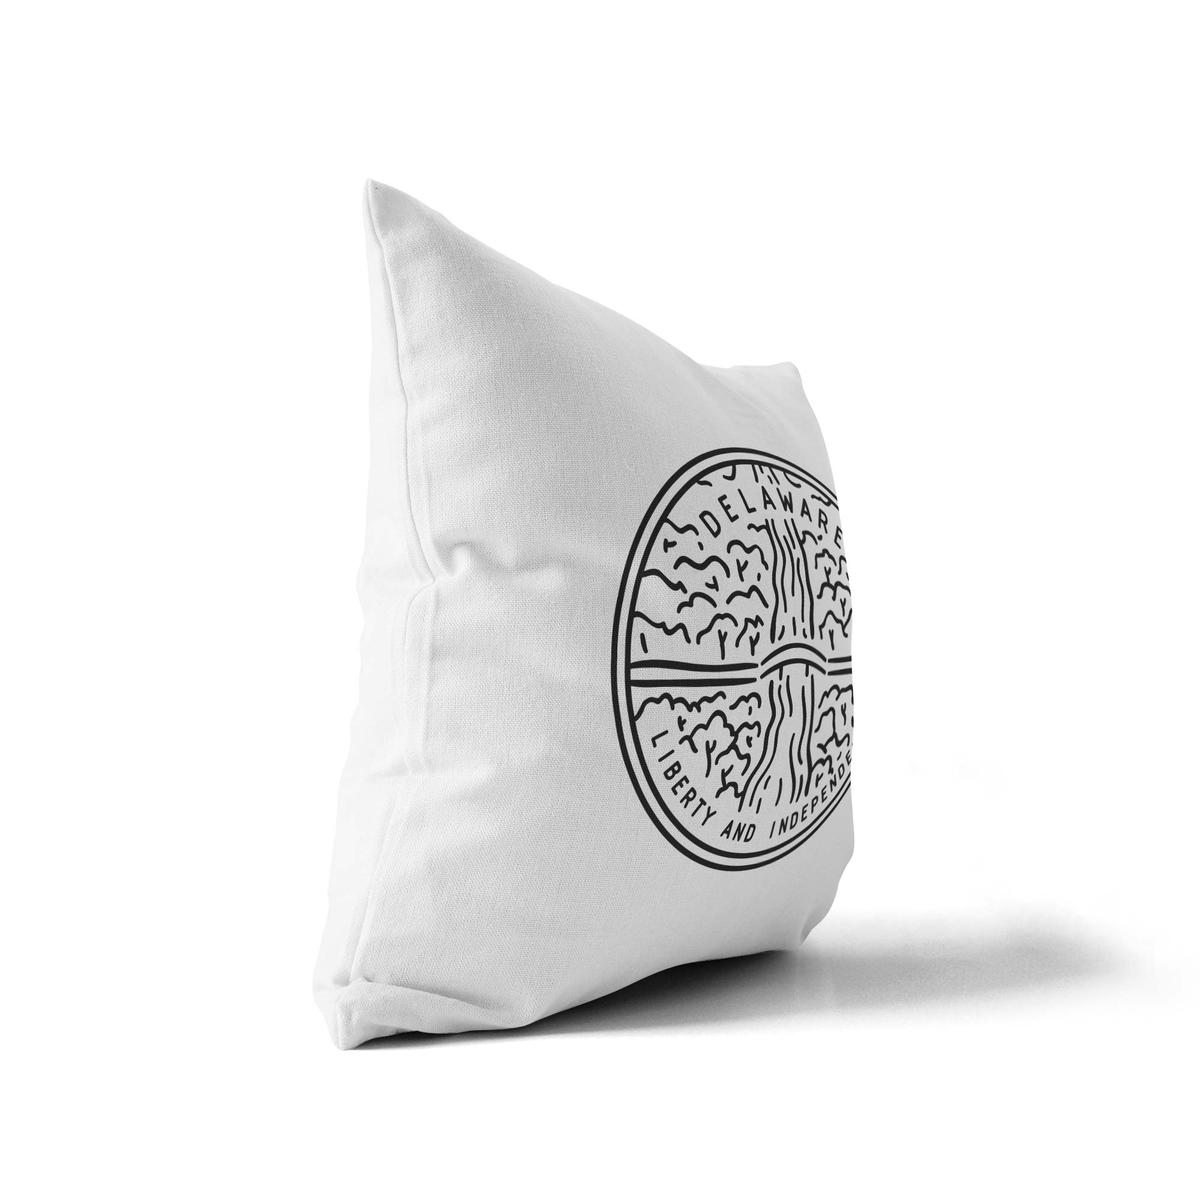 Delaware State Crest Velveteen Throw Pillow - Point Two Design